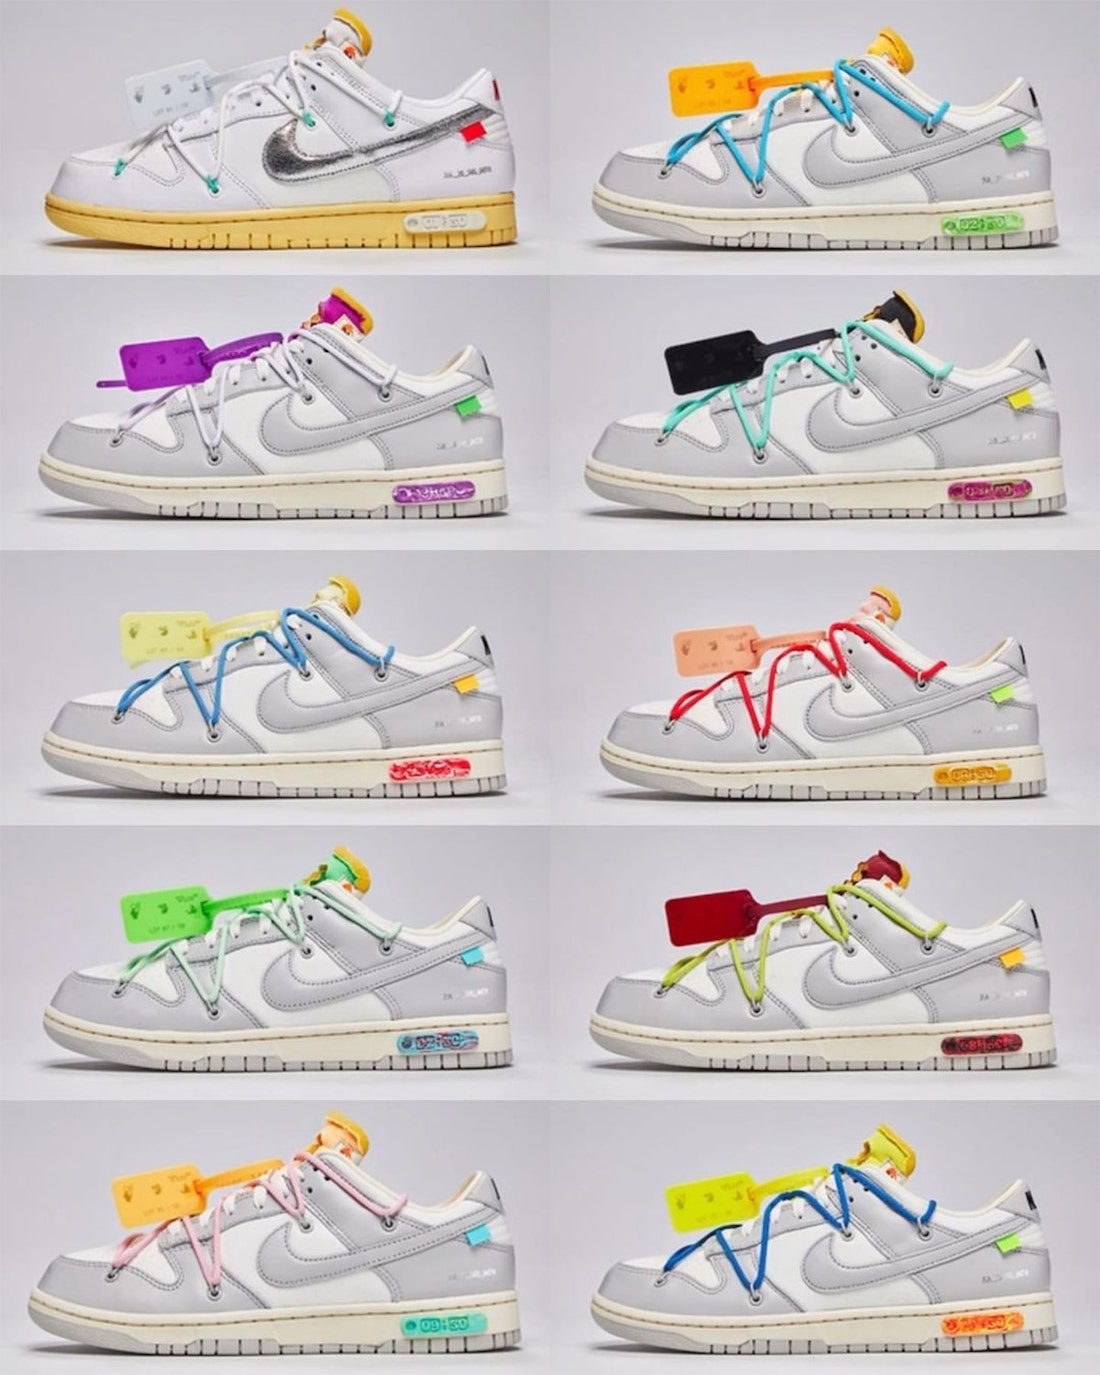 Off-White The 50 Nike Dunk Low Release Date